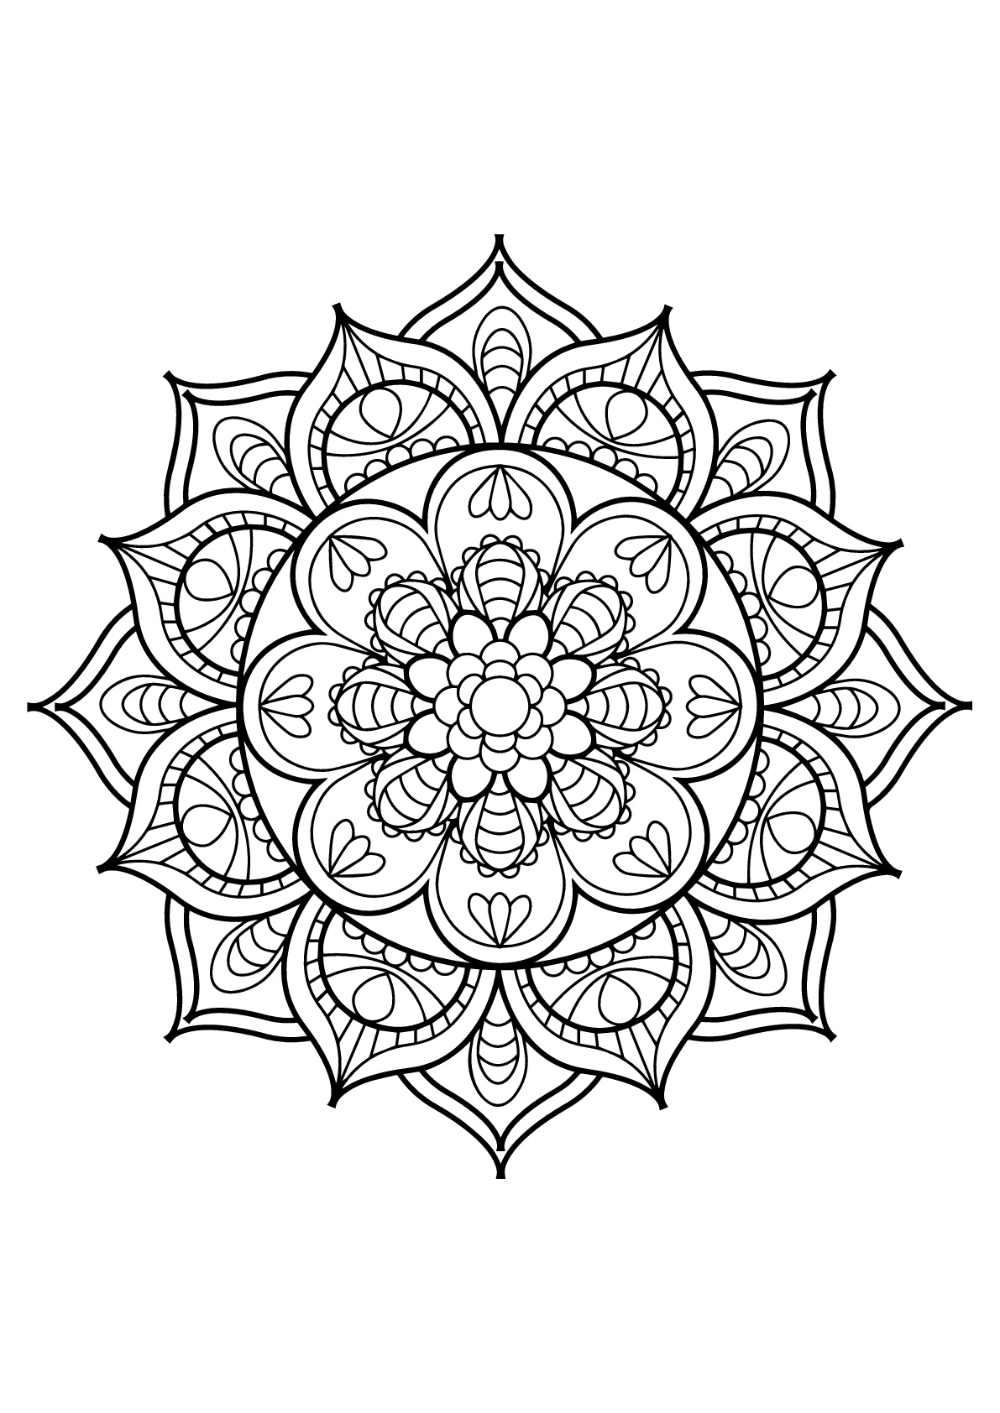 Mandala From Free Coloring Books For Adults 11 Mandalas Coloring Pages For Adults Just Color With Images Mandala Coloring Pages Adult Coloring Mandalas